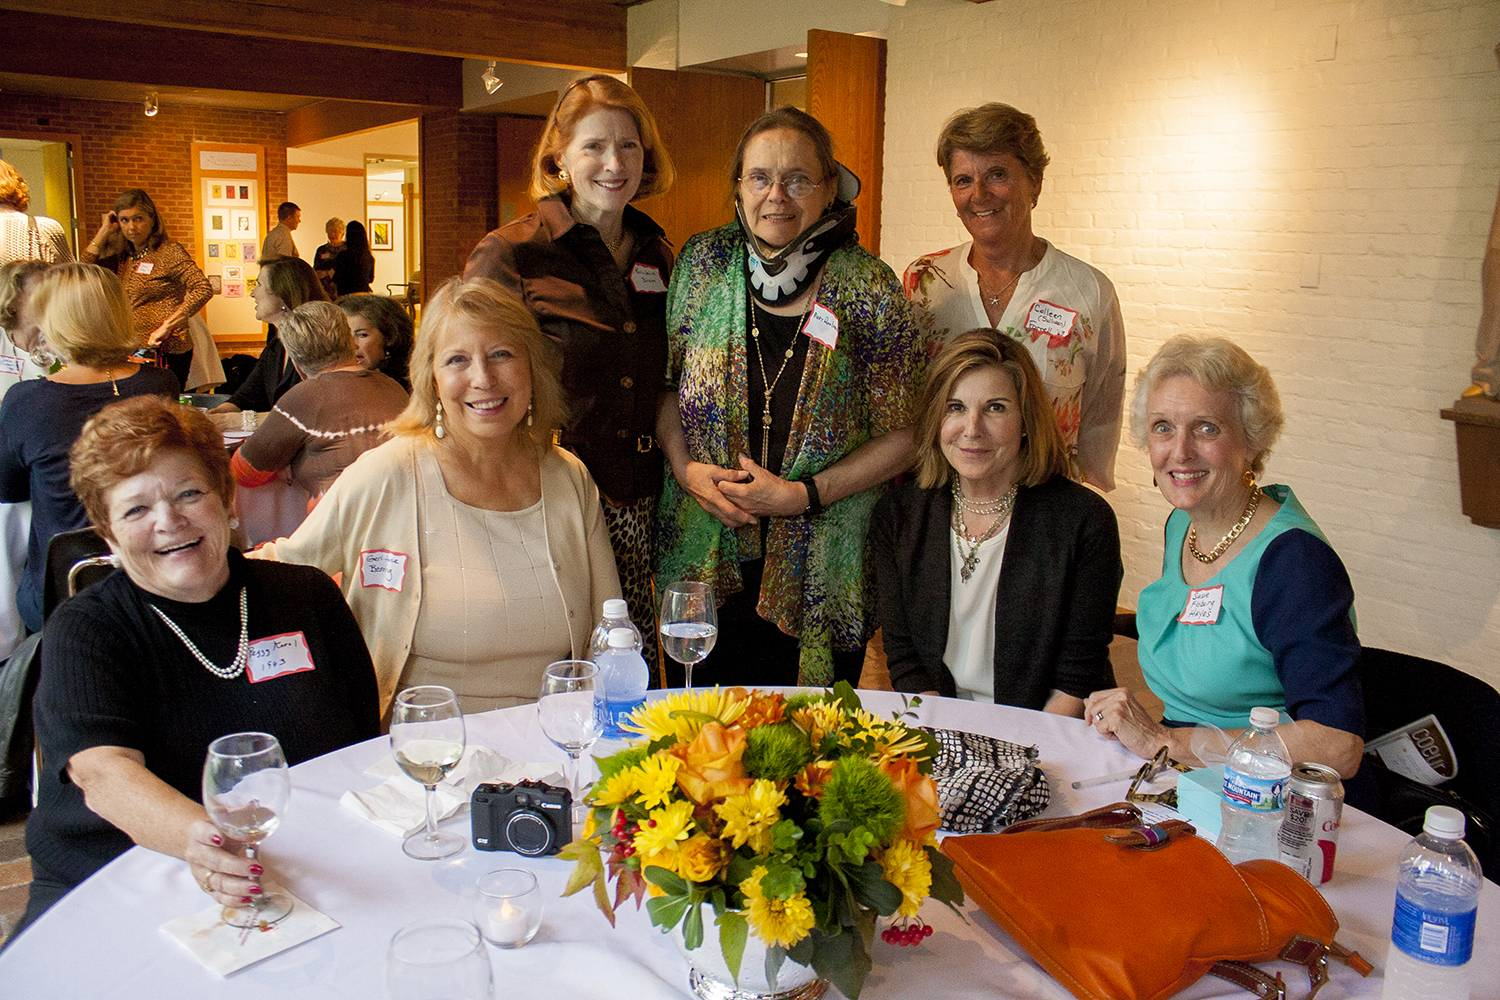 Susan Saint James (seated, second from right) joins classmates of 50 years ago at Woodlands Academy of the Sacred Heart Reunion Weekend during which she was the keynote speaker Oct. 4.  Also pictured are, from left, Peggy Connelly Karol, Geri-Anne Benning, Mariclaire Halligan Dixon, Mary Ann Entrup, Colleen Sullivan Farrell, Saint James and Suzie Floberg Hayes.